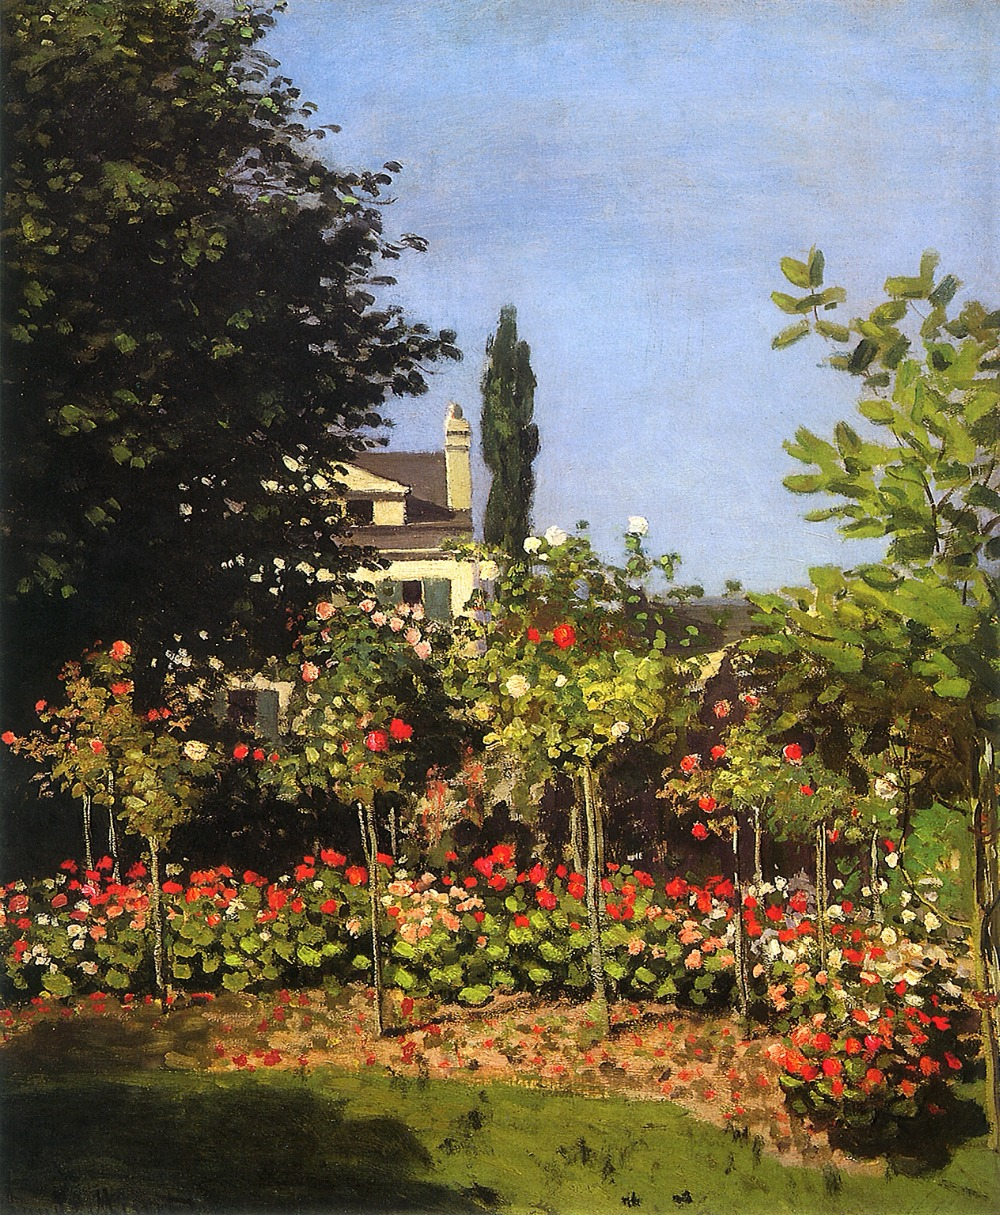 100% handmade landscape oil painting reproduction on linen canvas,garden-in-bloom-at-sainte-add by claude monet,oil paintings100% handmade landscape oil painting reproduction on linen canvas,garden-in-bloom-at-sainte-add by claude monet,oil paintings